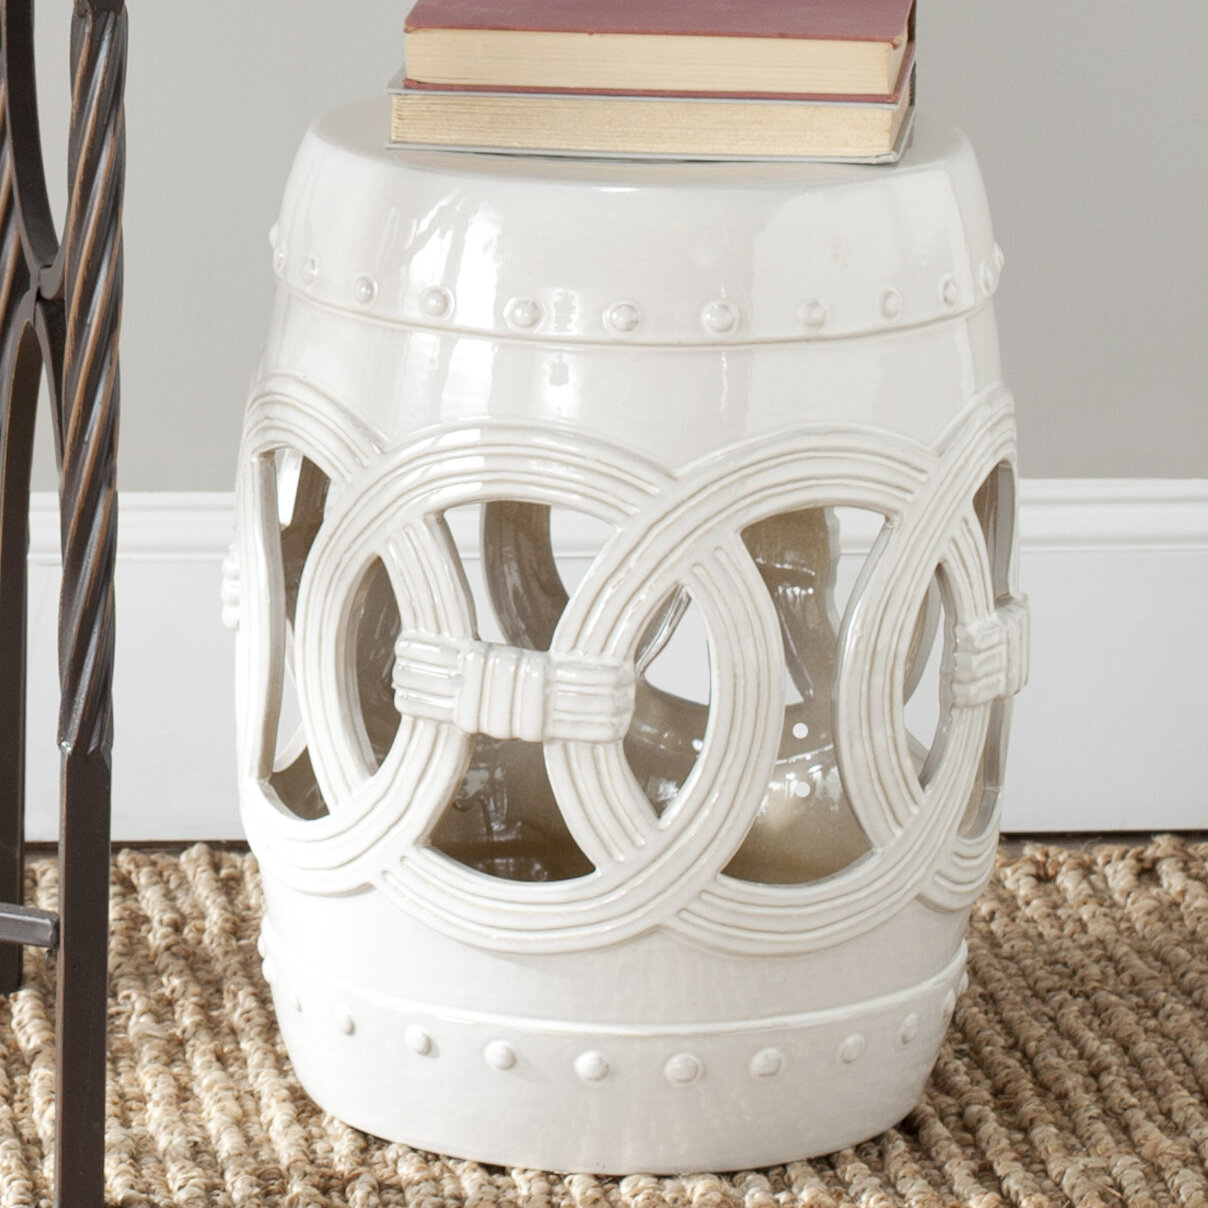 Garden White Accent Stools You'Ll Love In 2020 | Wayfair With Regard To Swanson Ceramic Garden Stools (View 12 of 25)